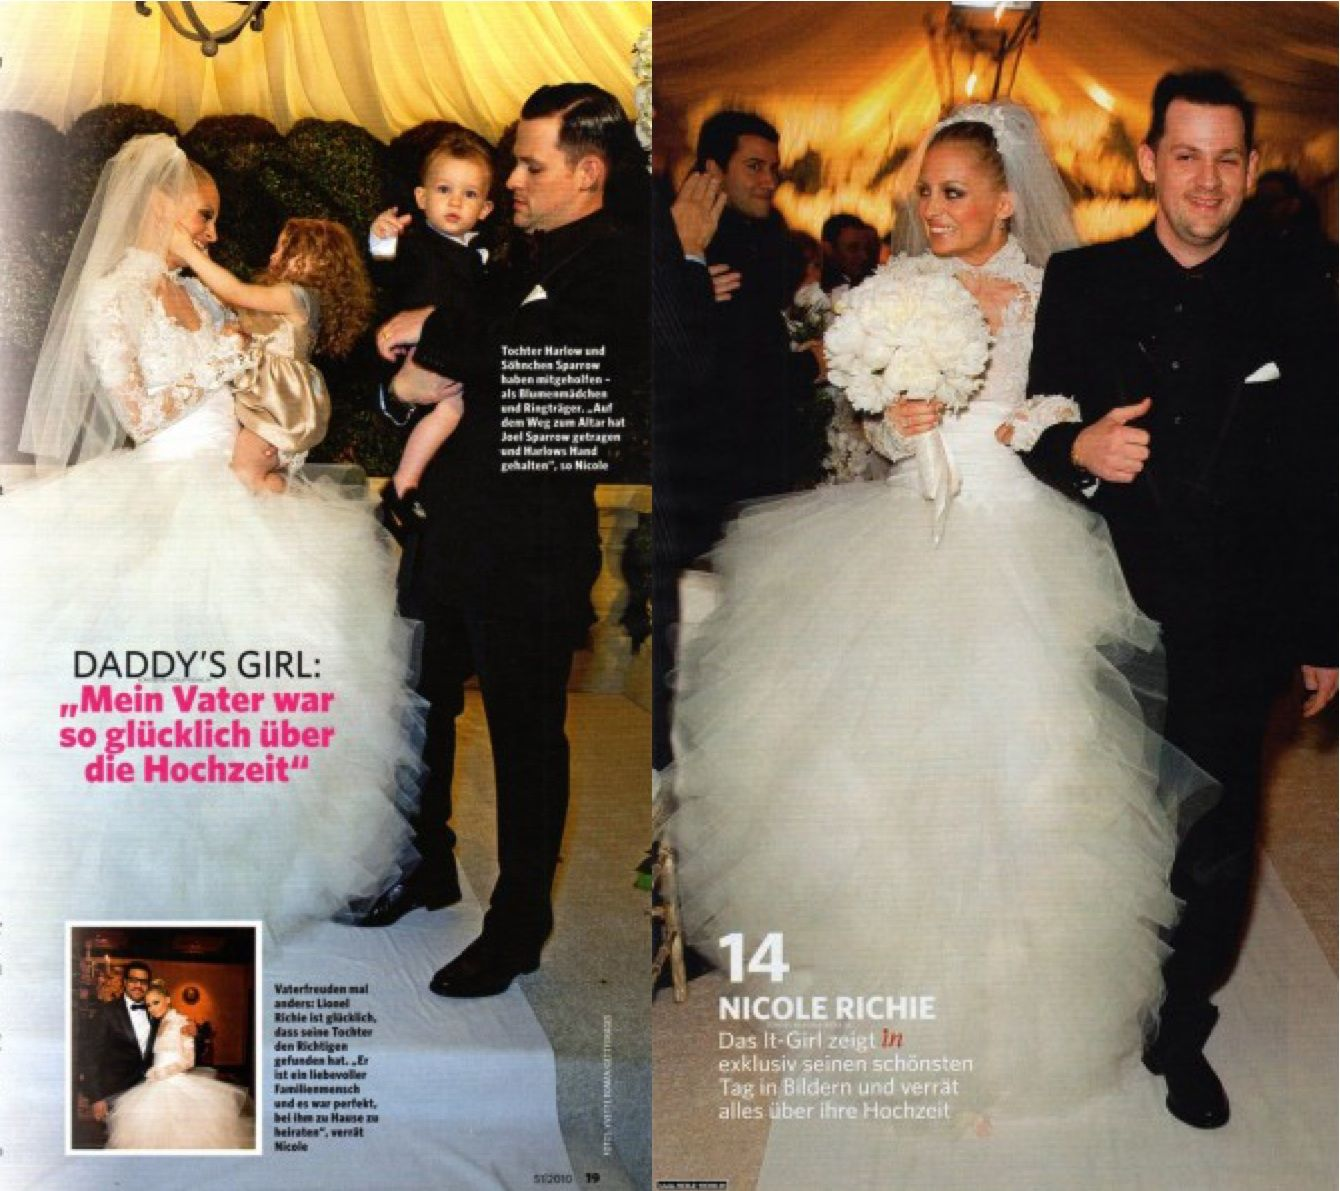 Wele Joel Madden Wedding Movies Interracial Nicole Richie Album: Nicole Richie Wedding Dresses At Reisefeber.org